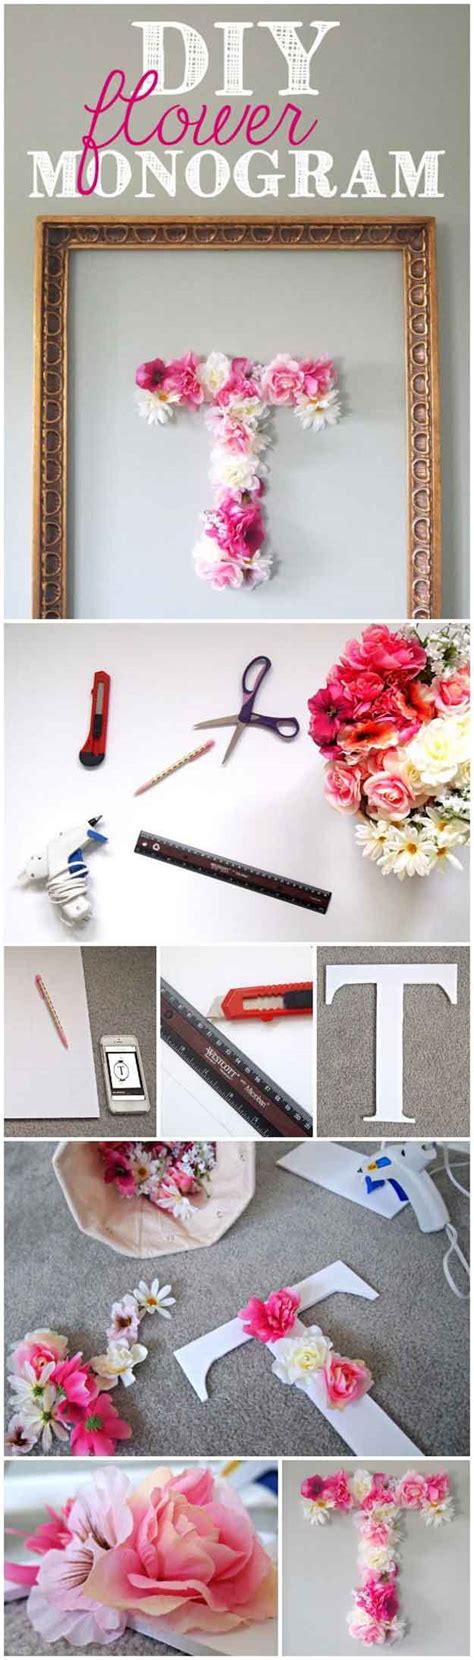 diy projects for your room diy projects for bedroom diy ready